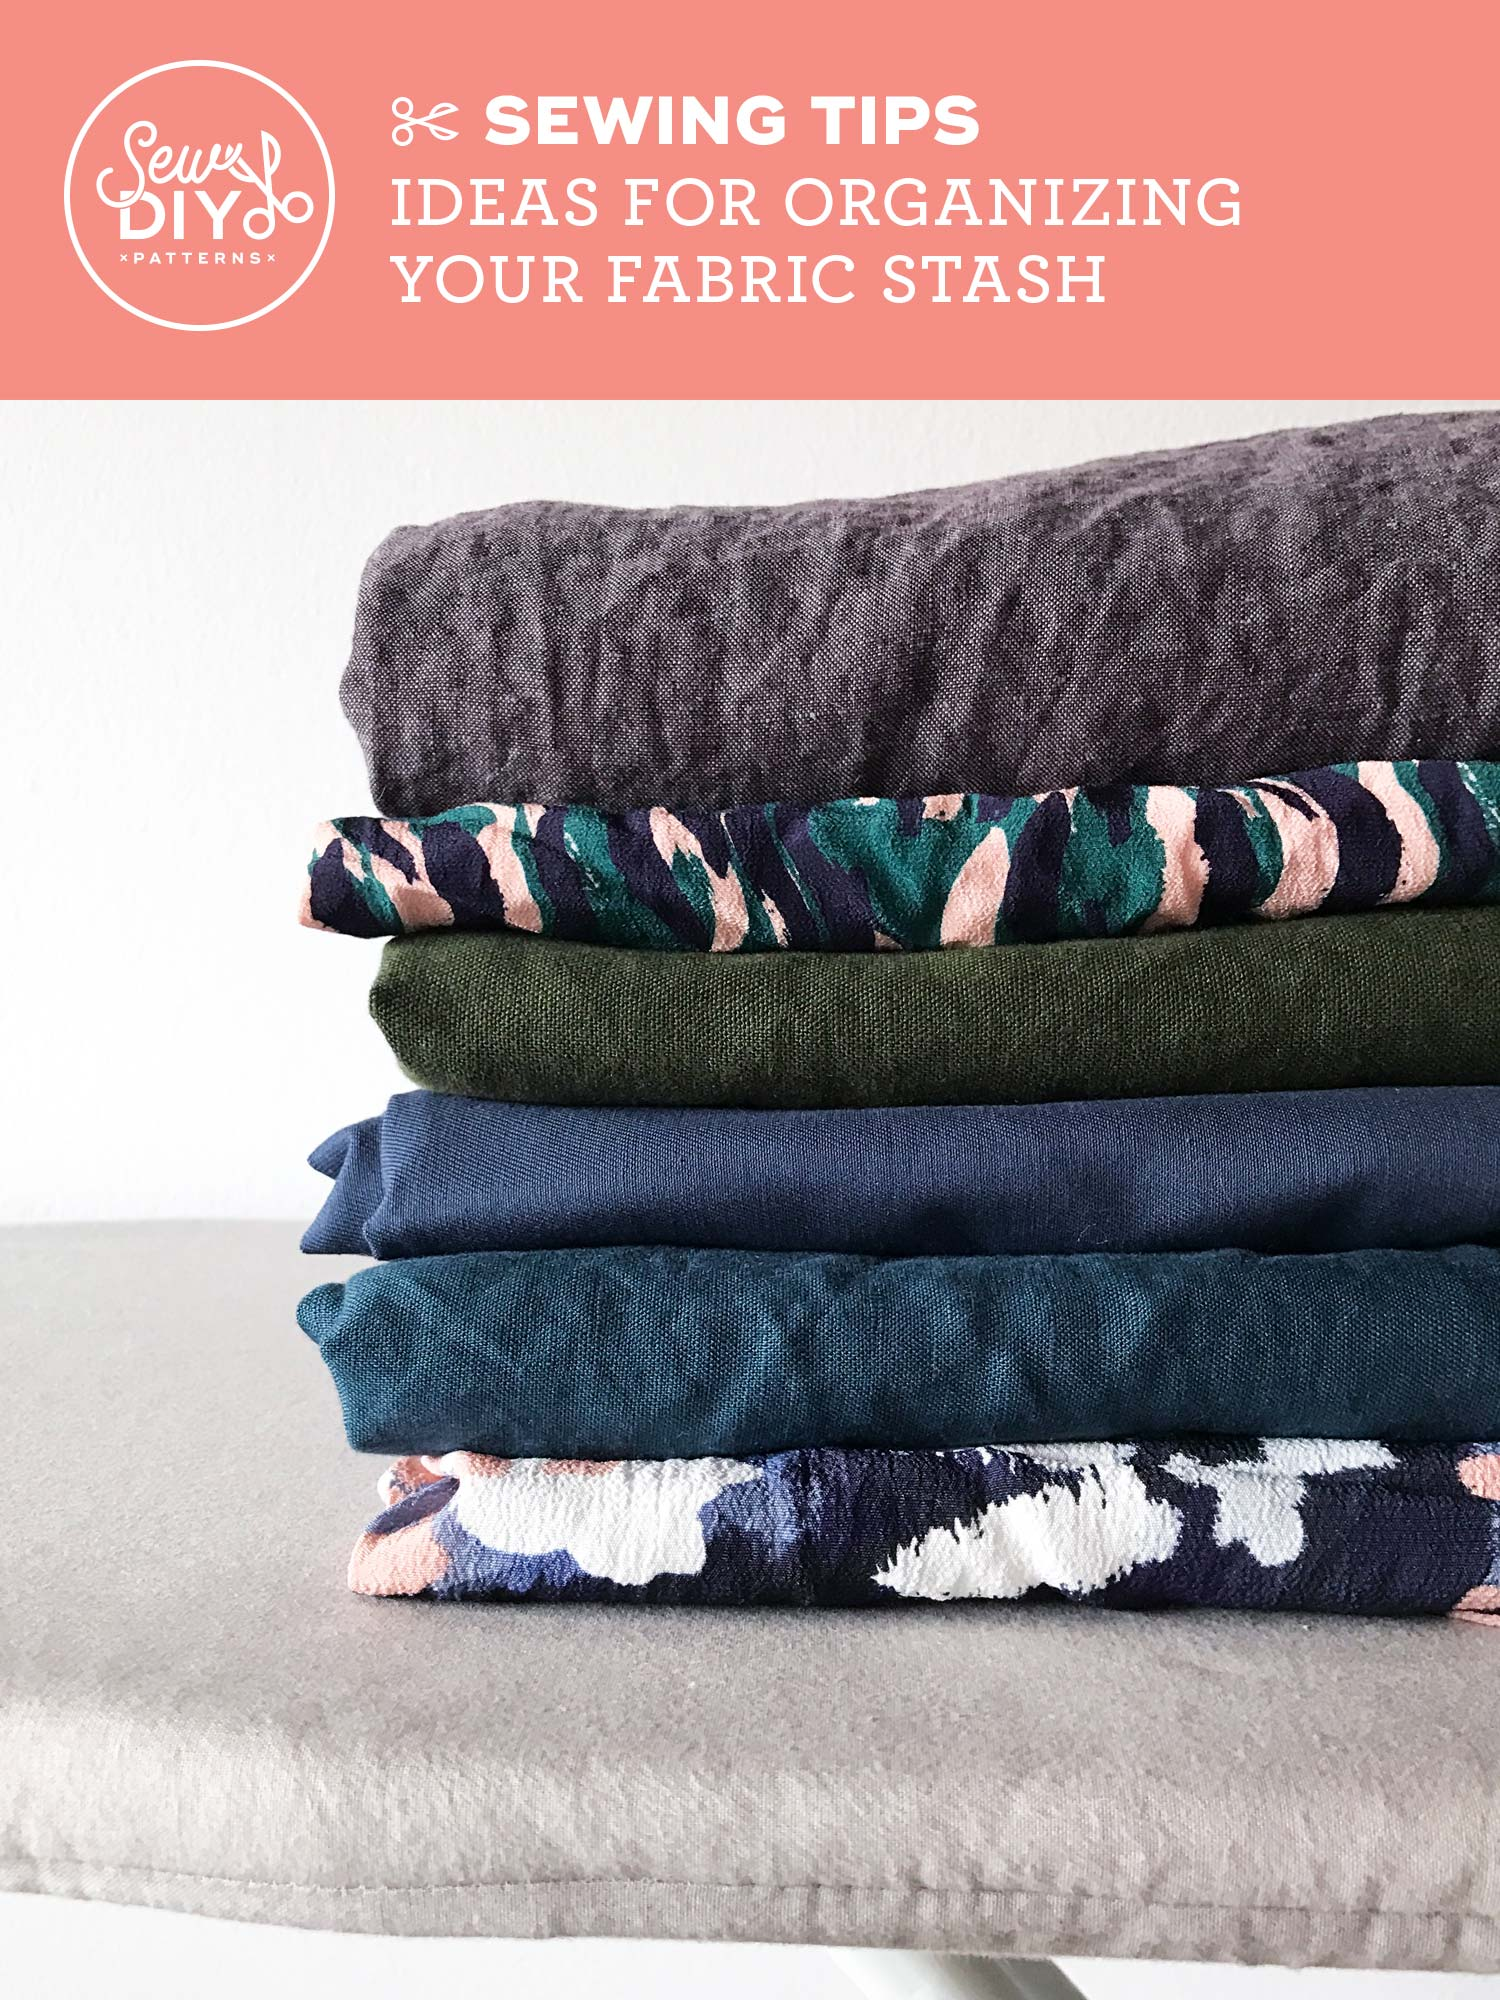 Ideas and Tips for Organizing Your Fabric Stash from Sew DIY